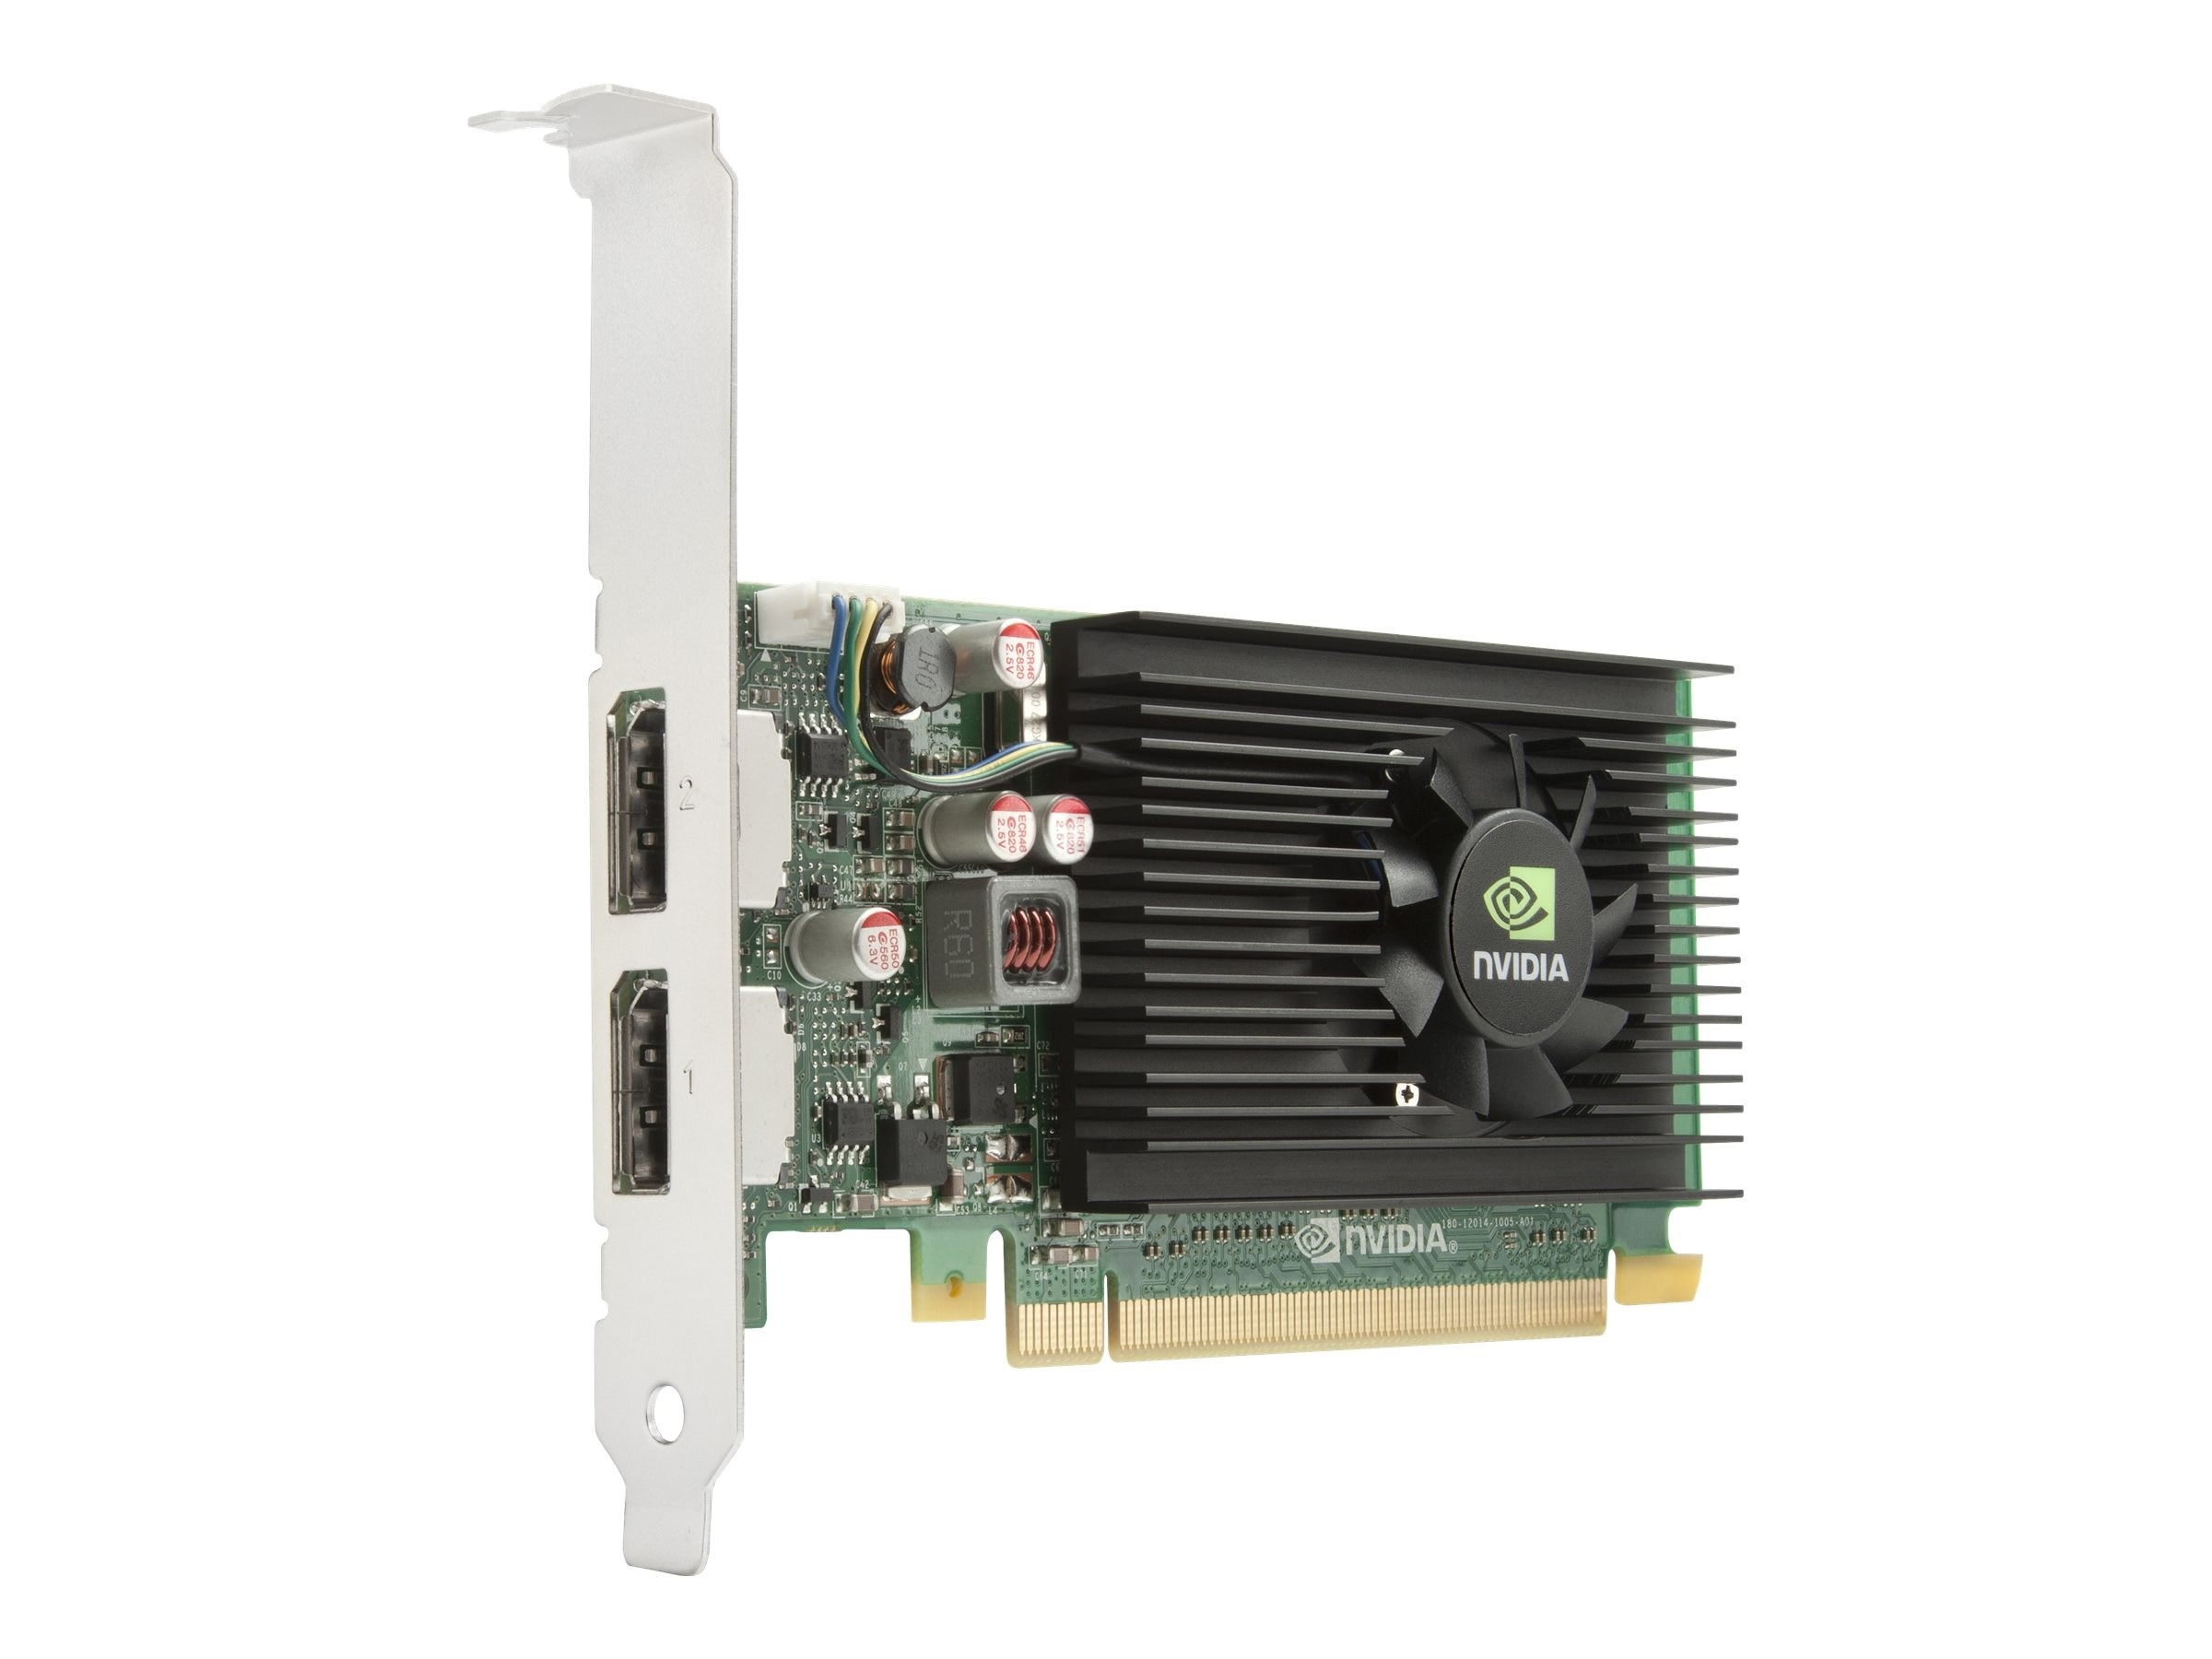 HP NVIDIA NVS 310 PCIe 2.0 x16 Graphics Card, 1GB DDR3